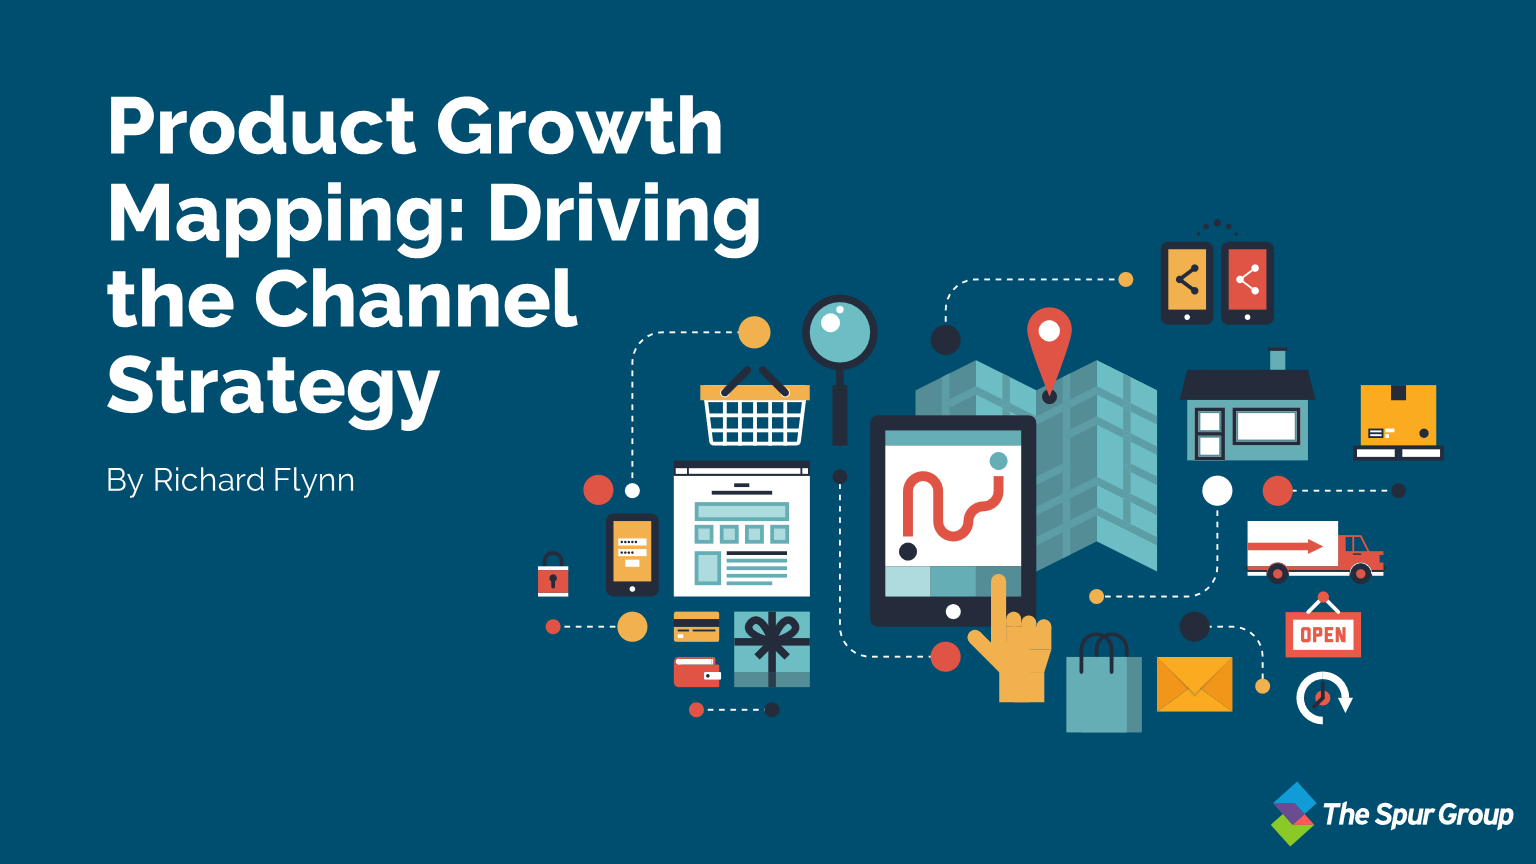 Product Growth Mapping: Driving the Channel Strategy